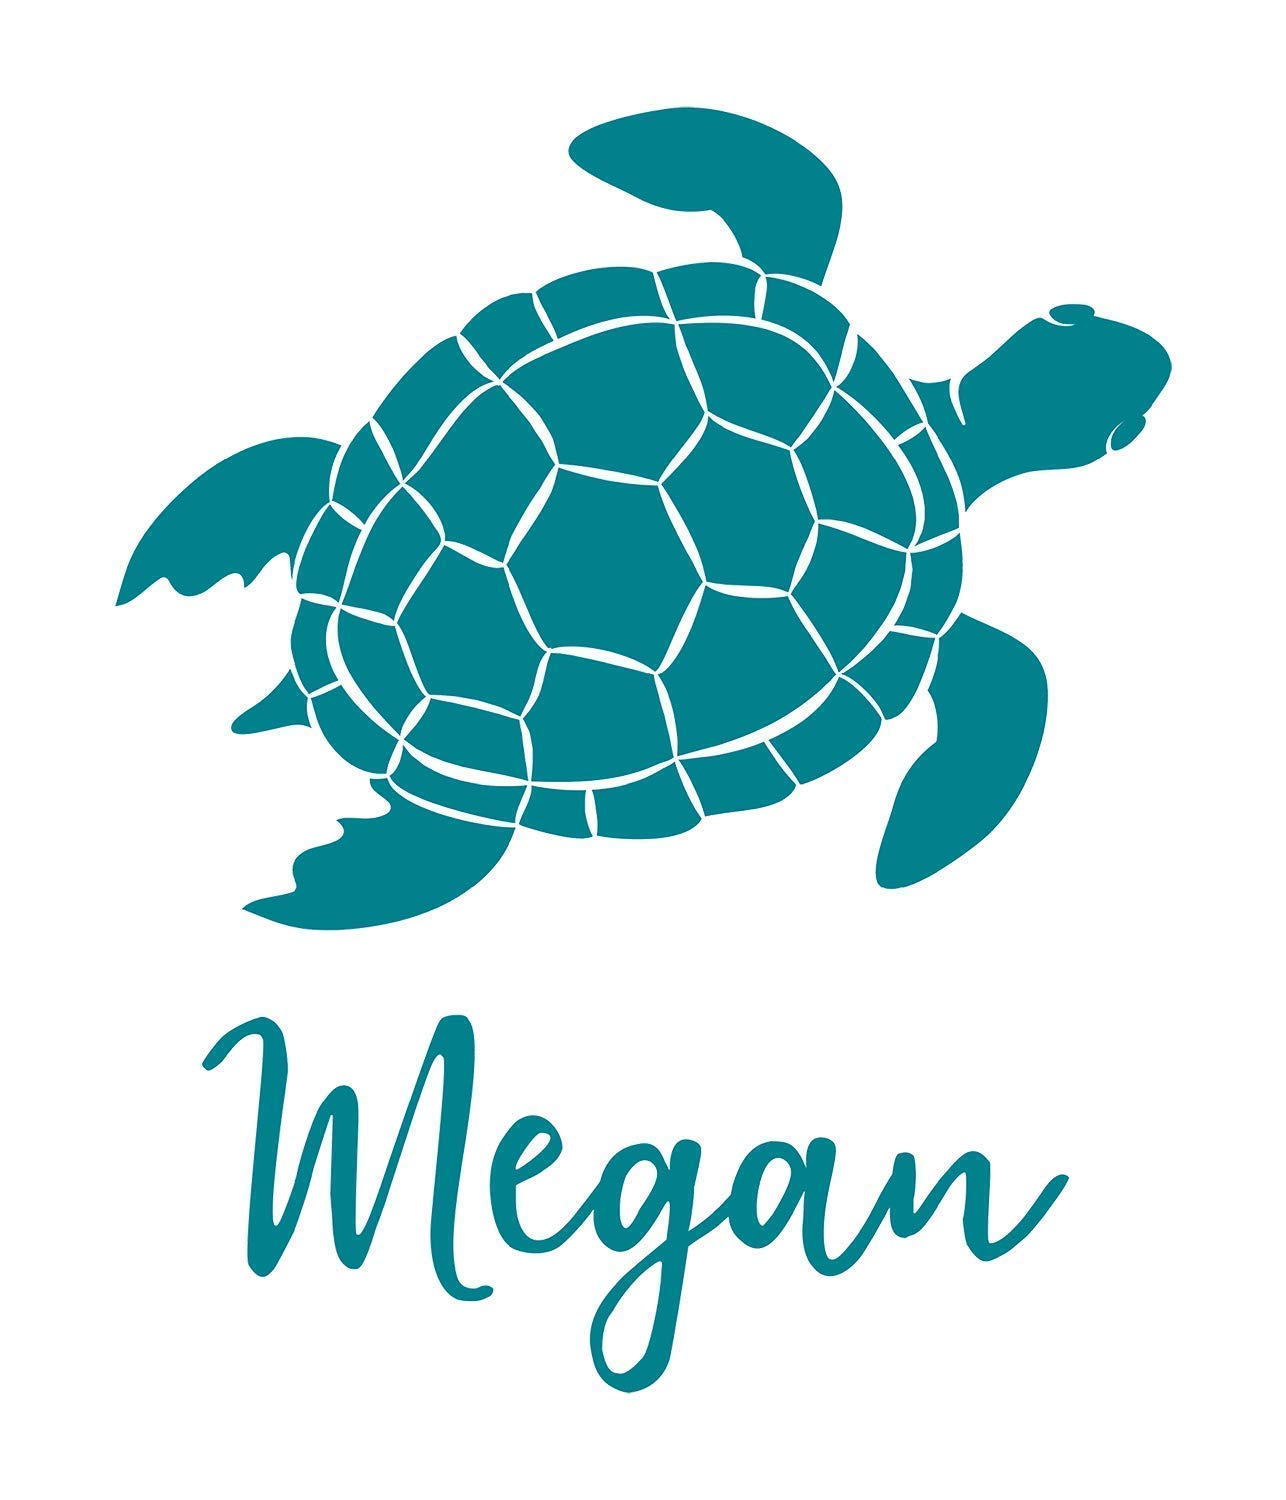 Personalized Vinyl Decal for Car//Phone//YETI cup Sea Turtle Monogram by An Engineered Craft